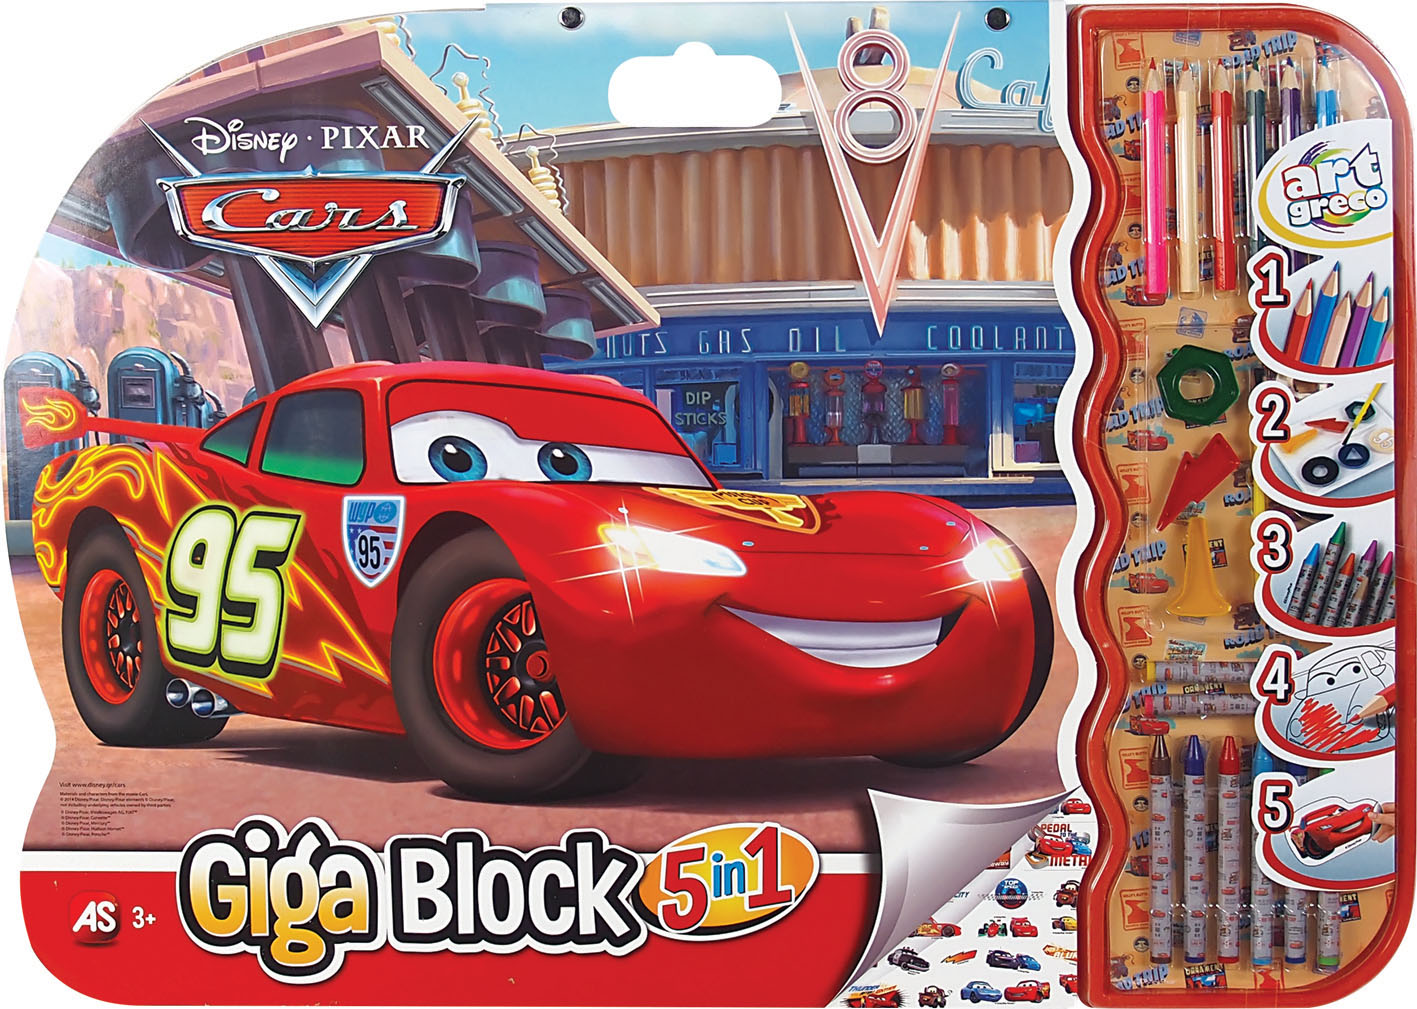 GIGA BLOCK CARS 5 IN 1